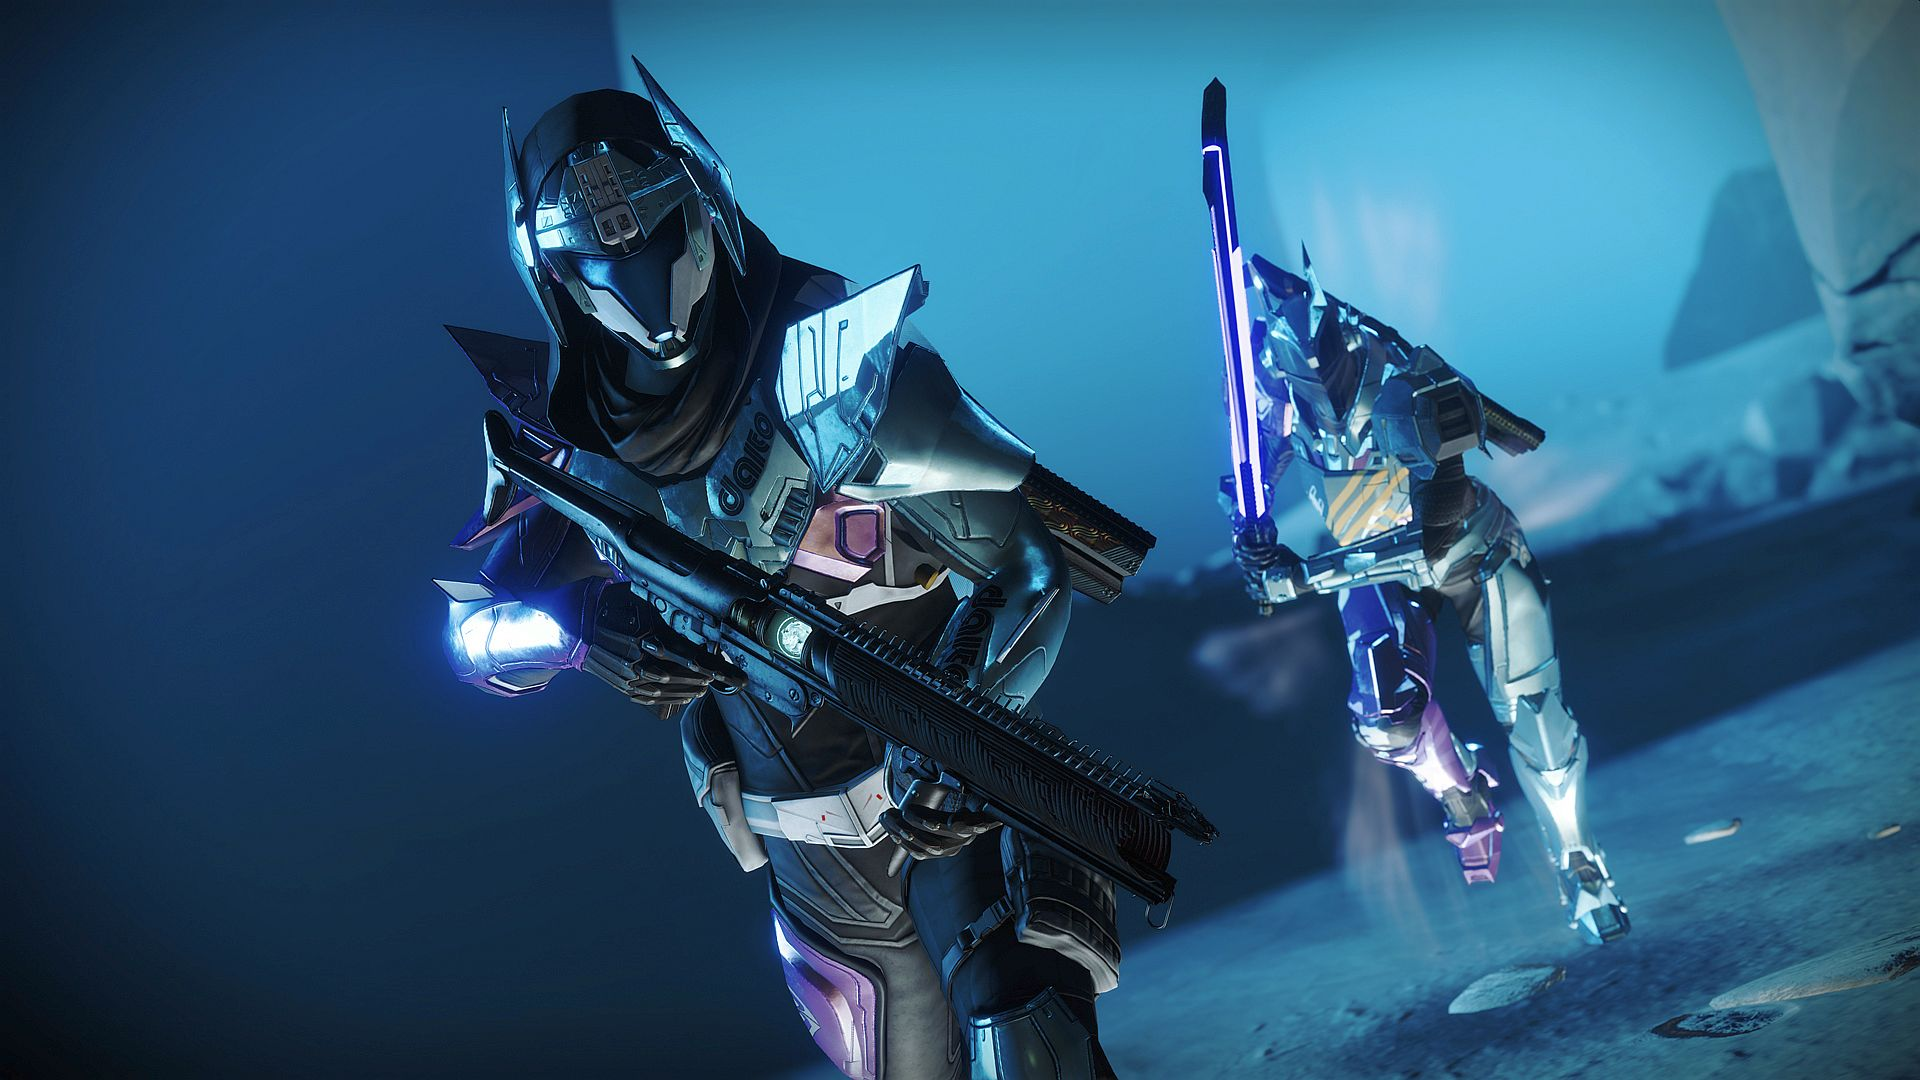 Destiny 2 Gets A Trippy New Dungeon Featuring The Nine In Season